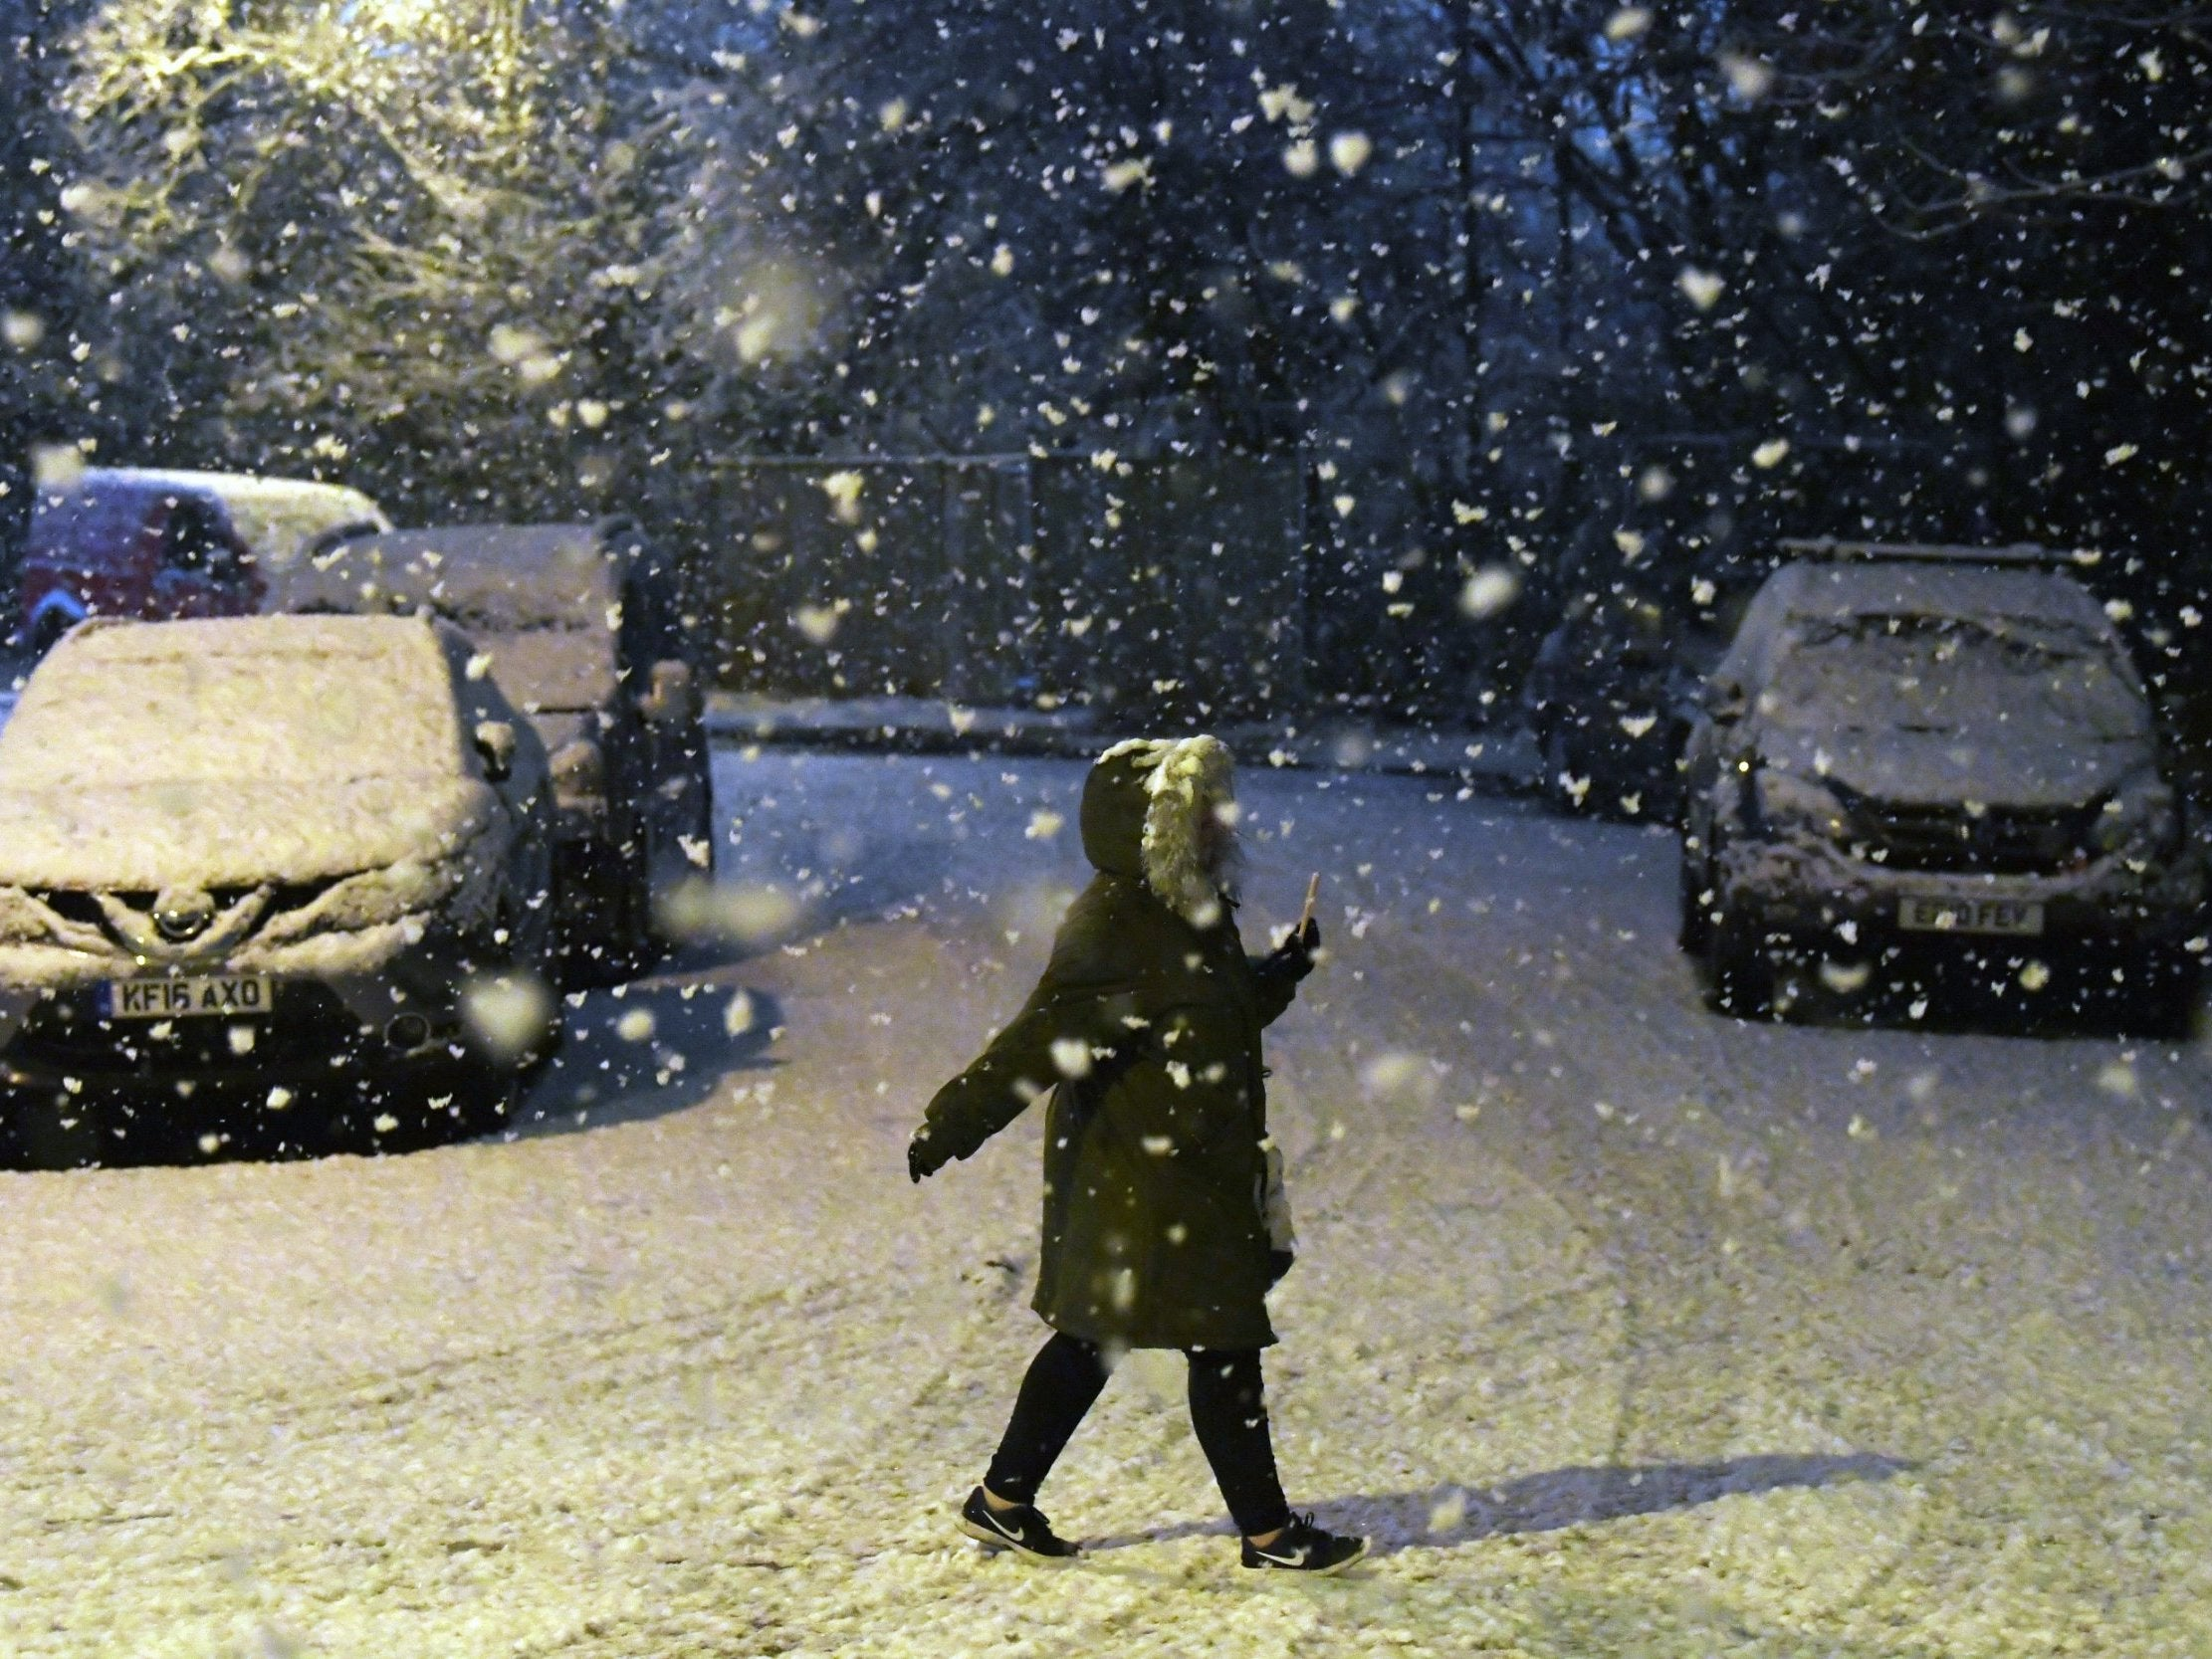 UK weather forecast: Met Office issues severe ice warning as freezing temperatures drop below -10C